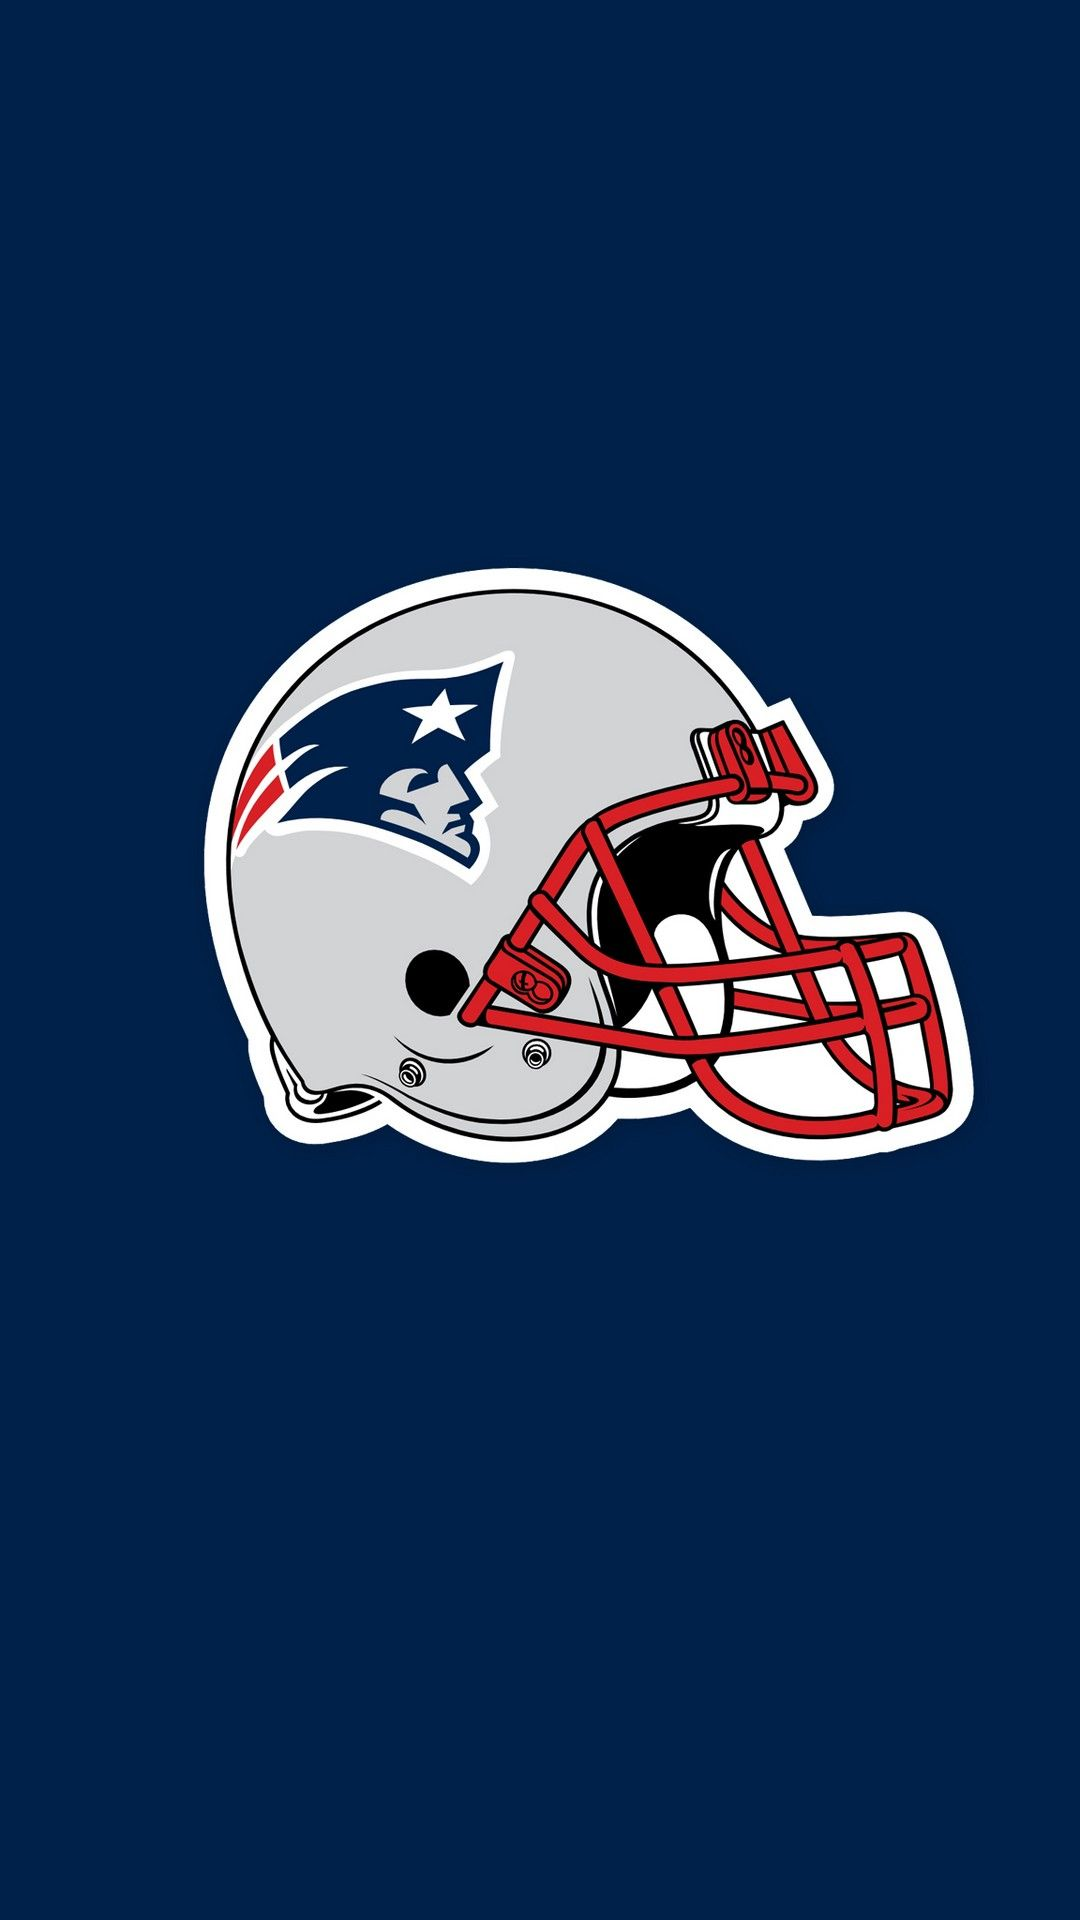 New England Patriots Iphone 6 Plus Wallpaper Best Nfl Wallpaper New England Patriots Wallpaper New England Patriots Logo New England Patriots